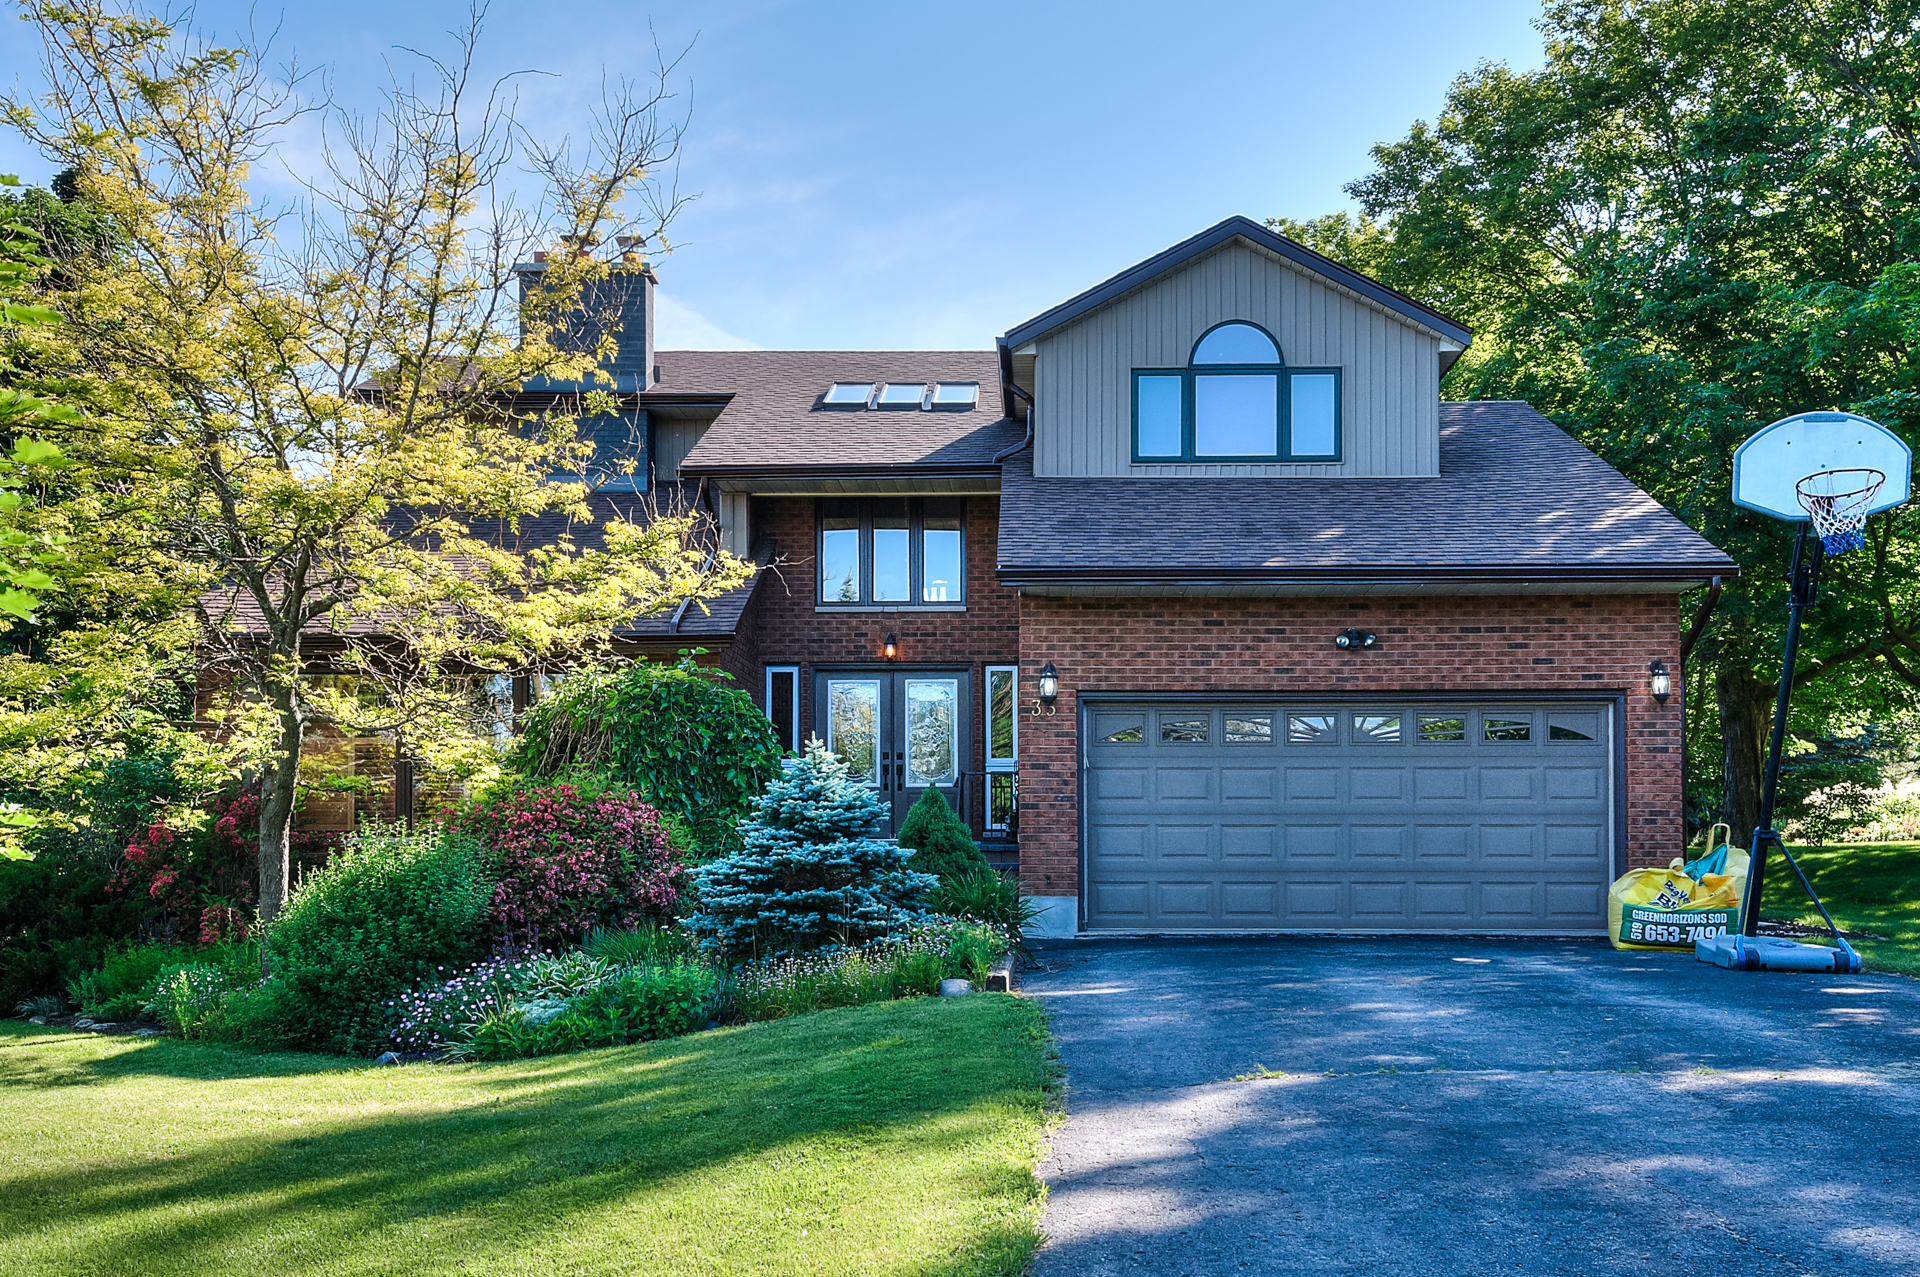 35 Amalia Crescent, Belwood | Presented by Adam Stewart, Realtor ®  | Chestnut Park West | +1 519.265.2602